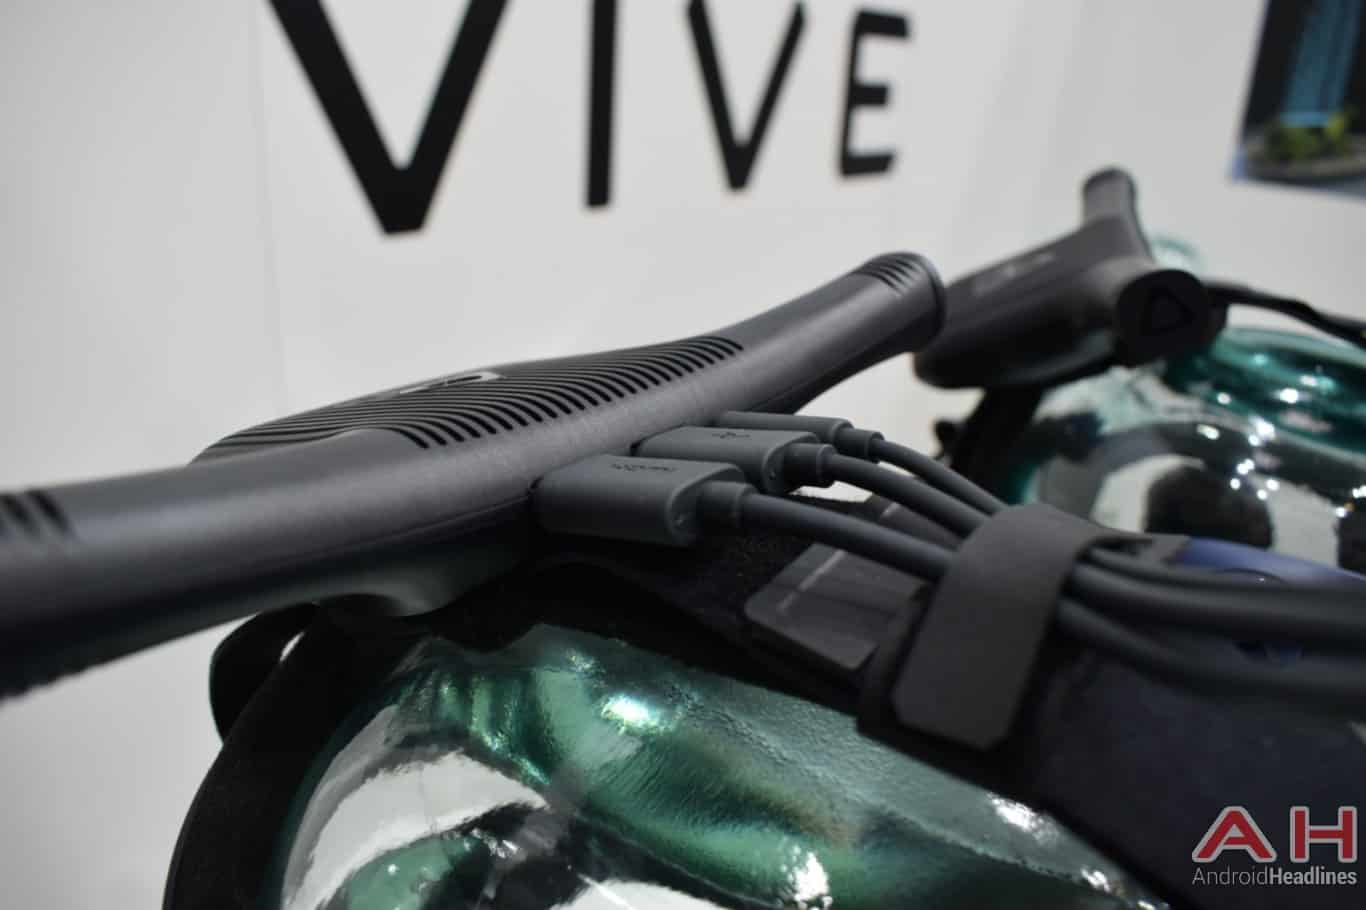 AH HTC Vive Wireless Adapter MWC 2018 hands on 3